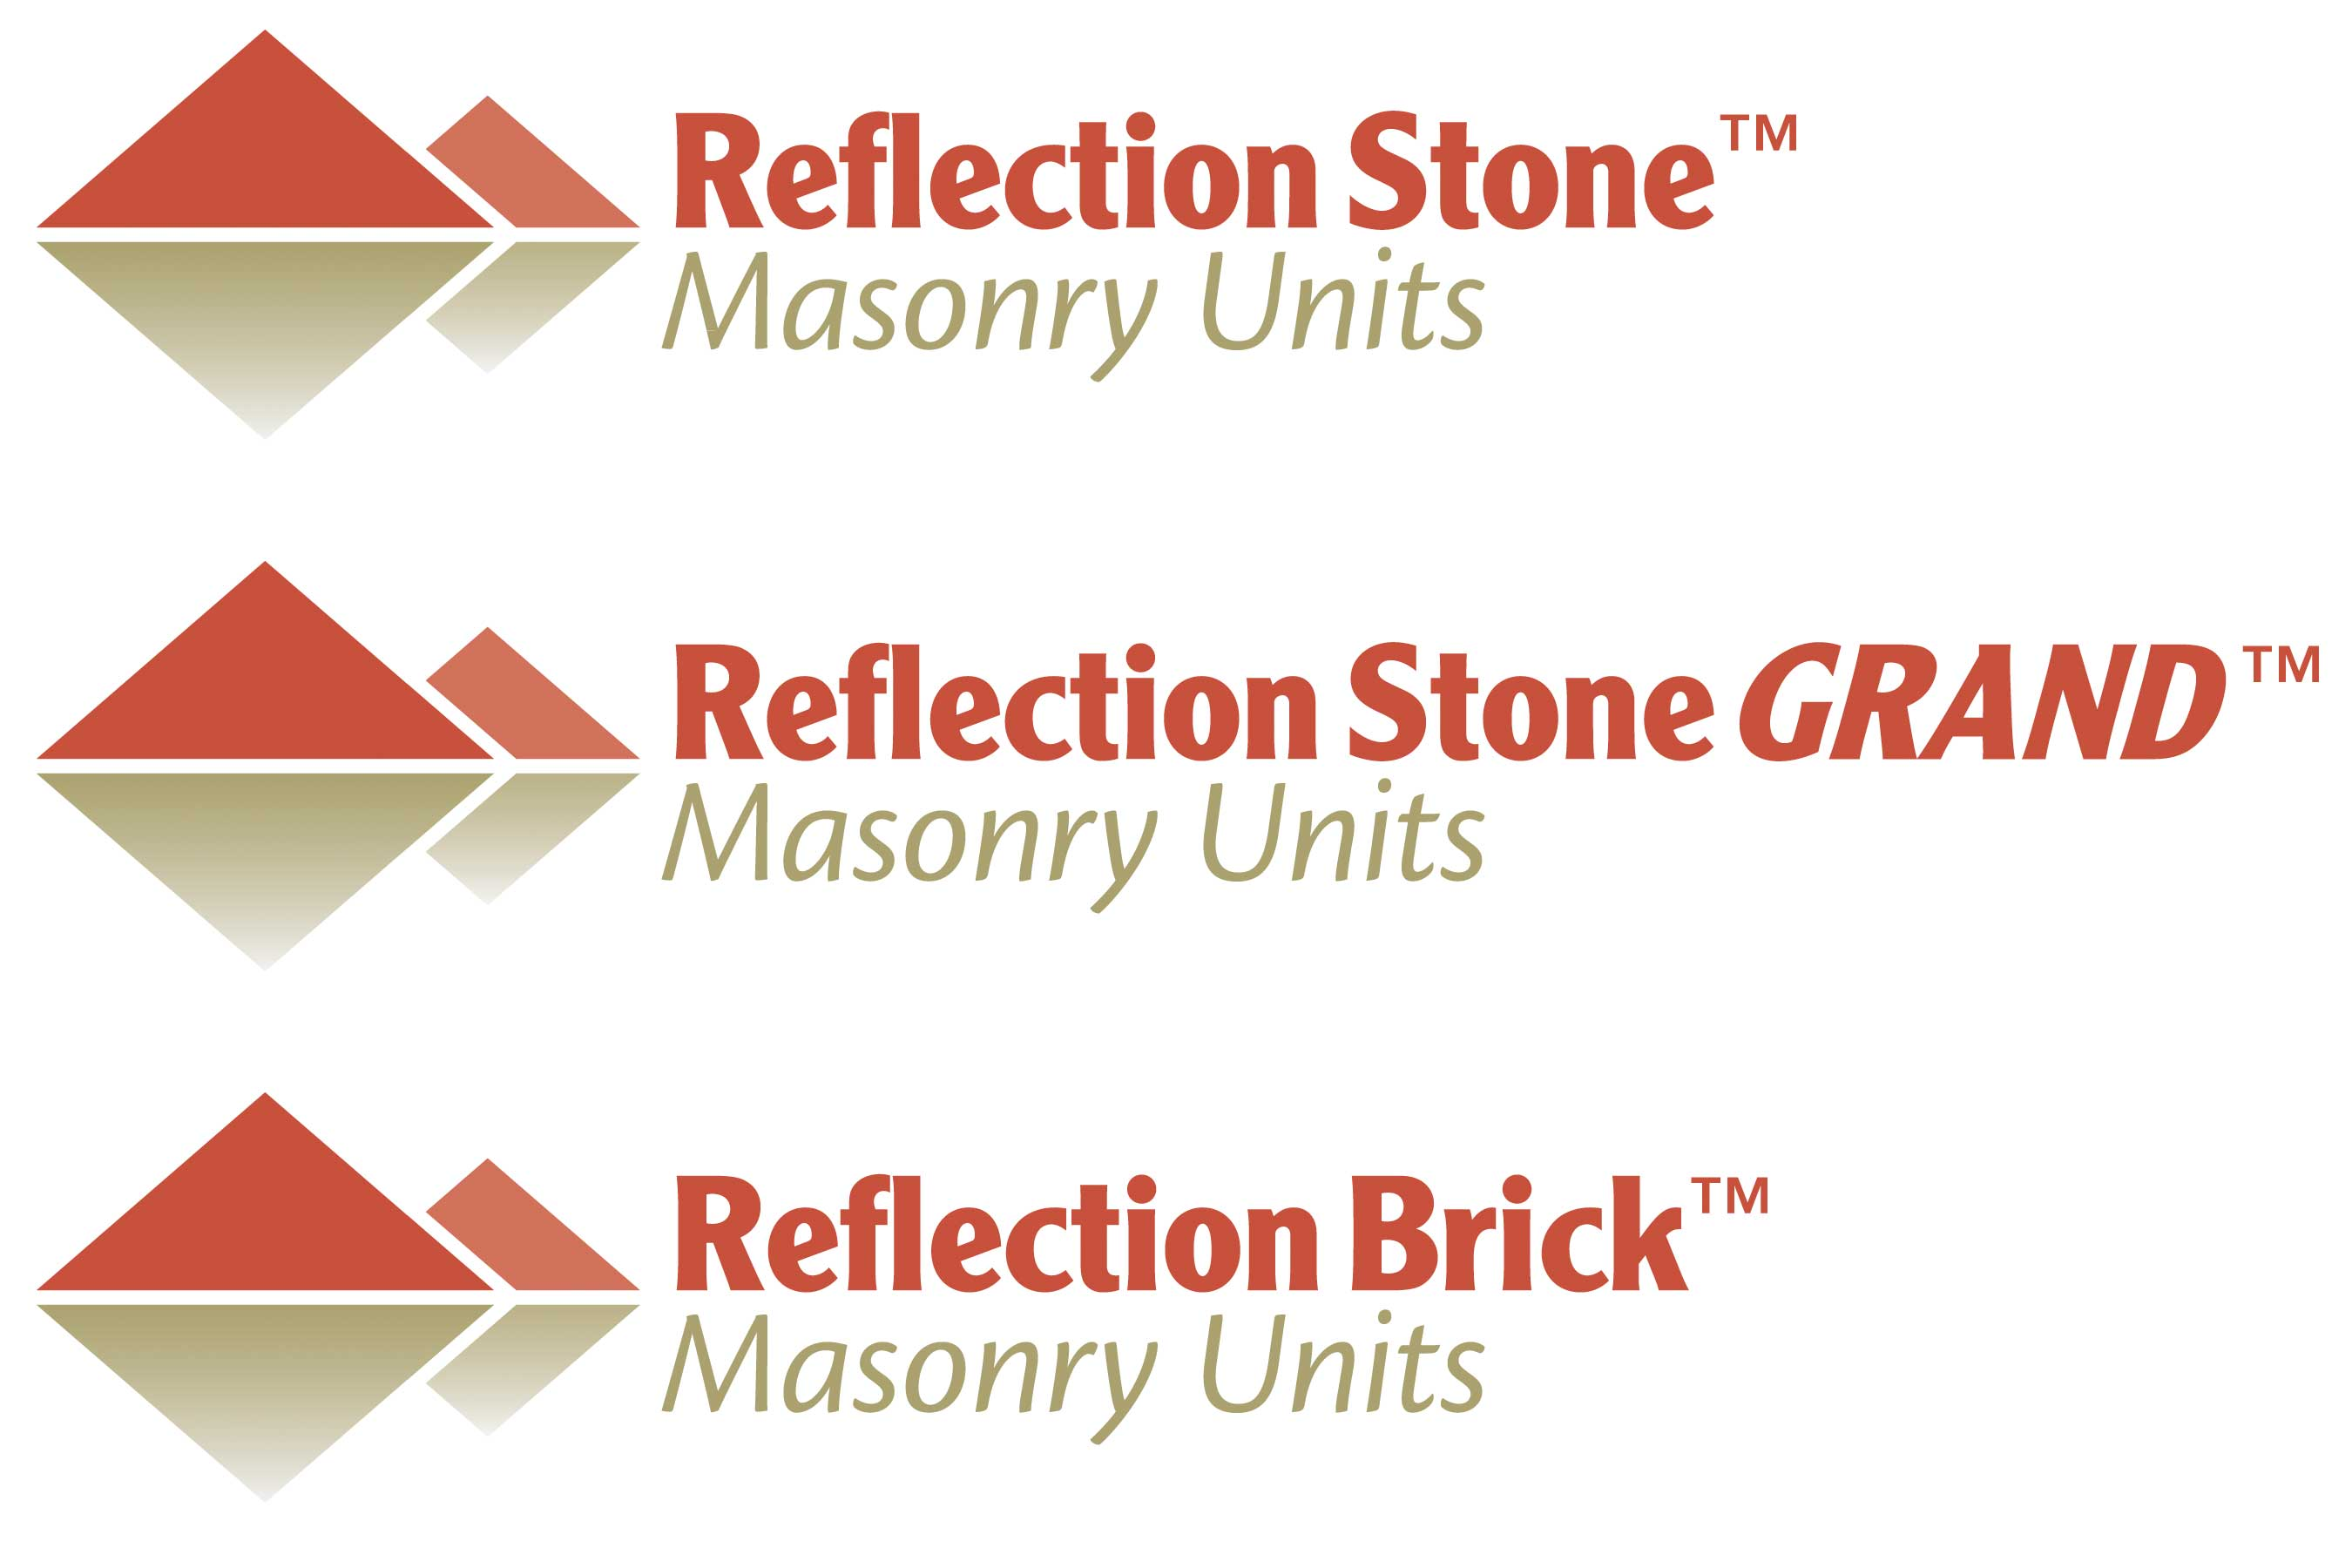 Reflection Stone Masonry Units